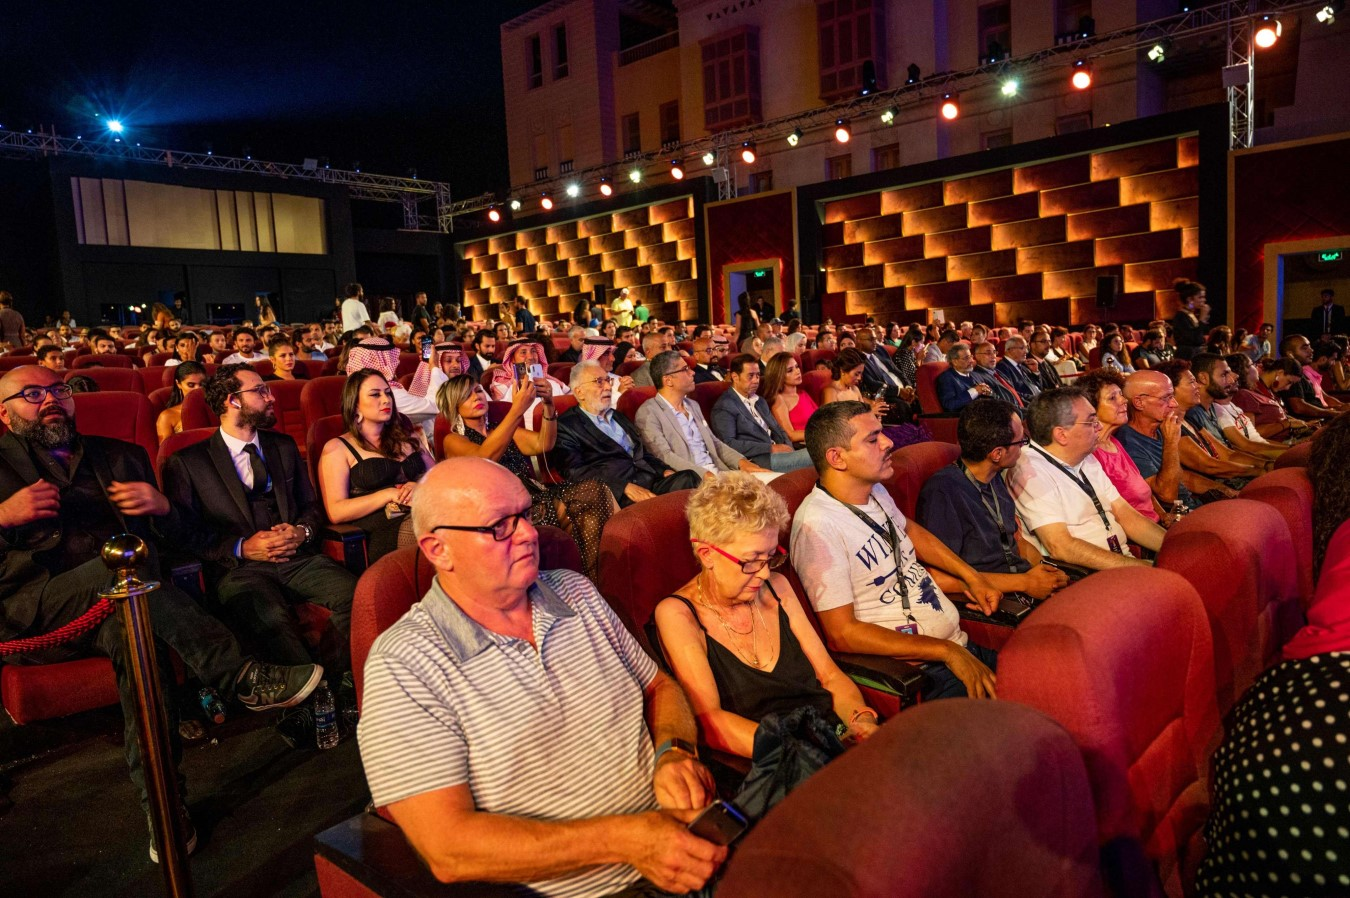 The general public attend the screening of the movie The Knight and the Princess as part of 3rd edition of ElGouna Film Festival, at Marina Theatre, in ElGouna, Egypt on September 23. (AFP)